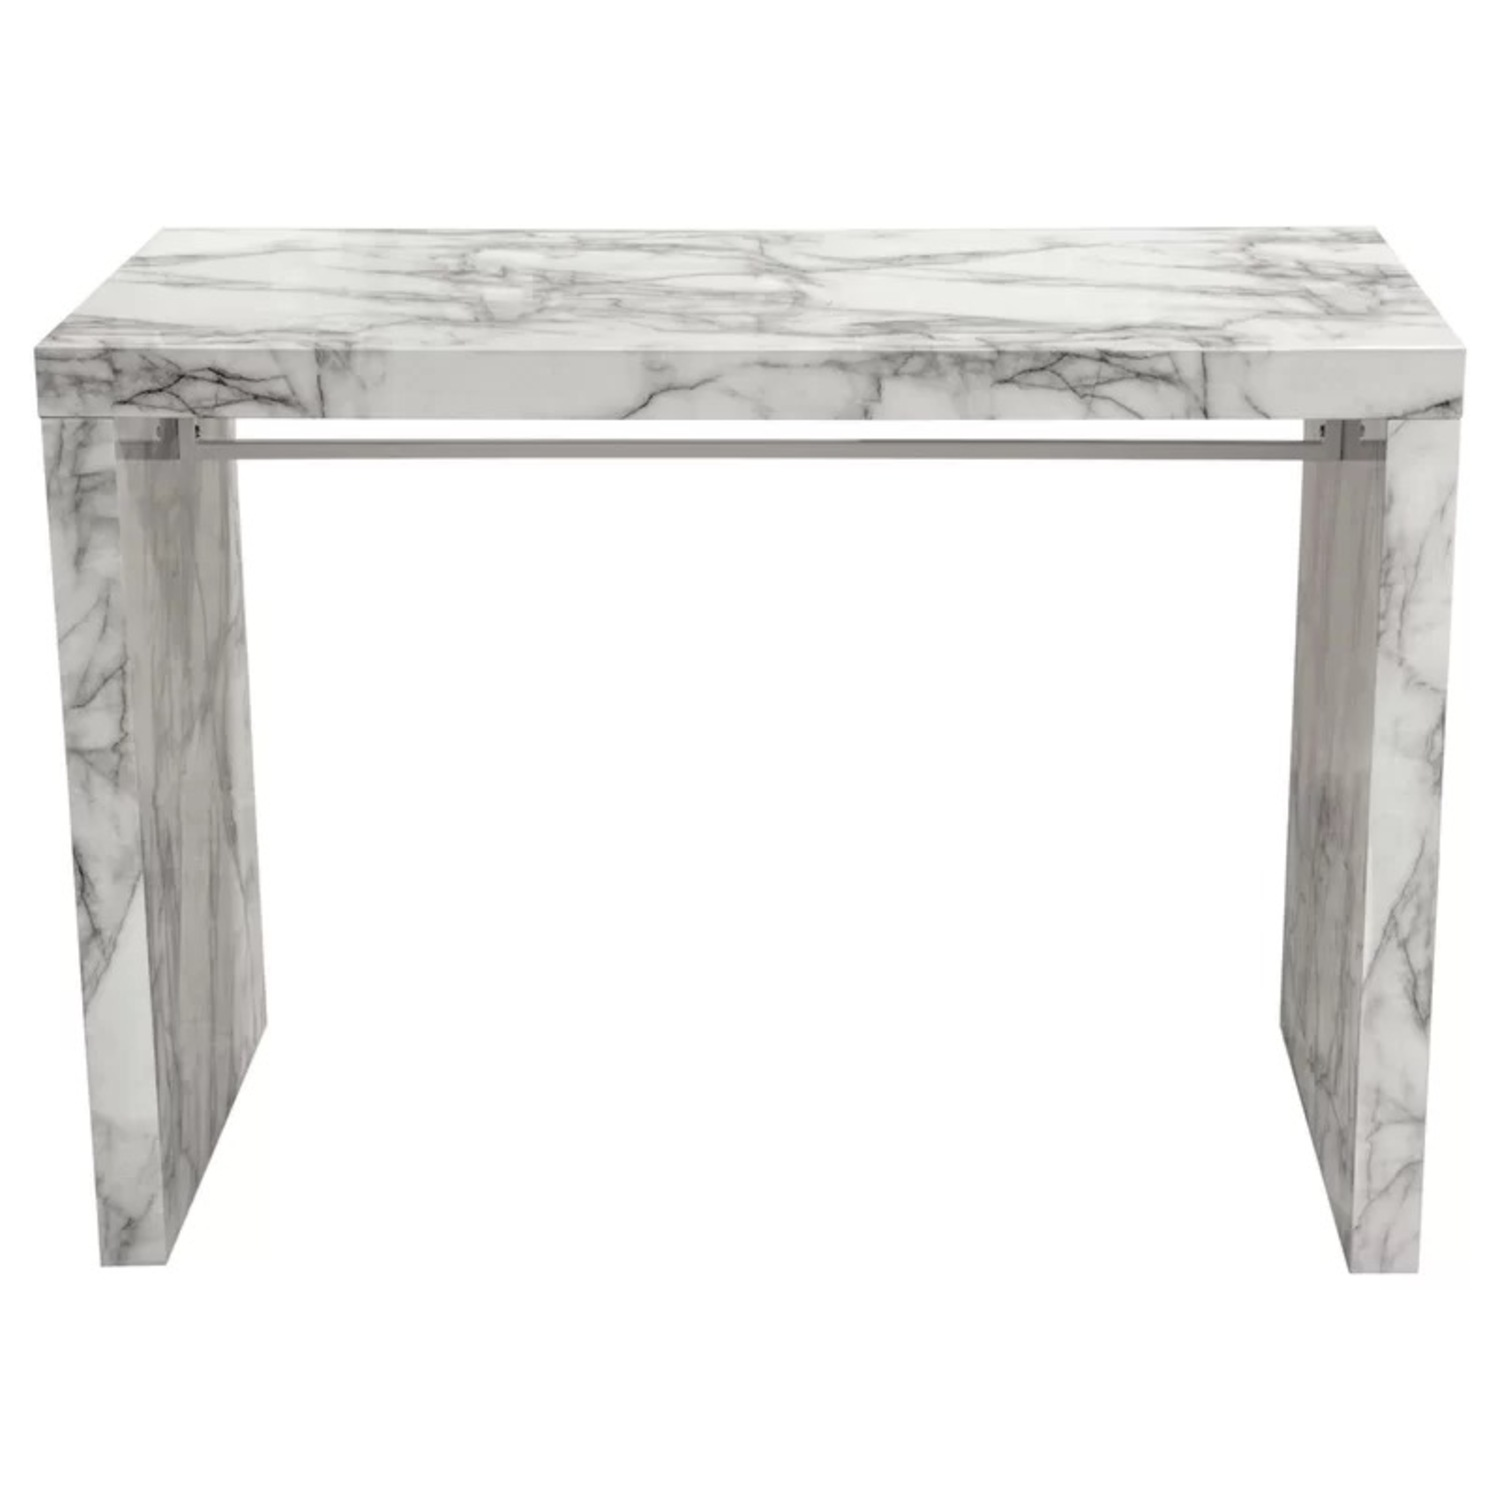 Icon Faux Marble Waterfall Bar Height Table - image-8